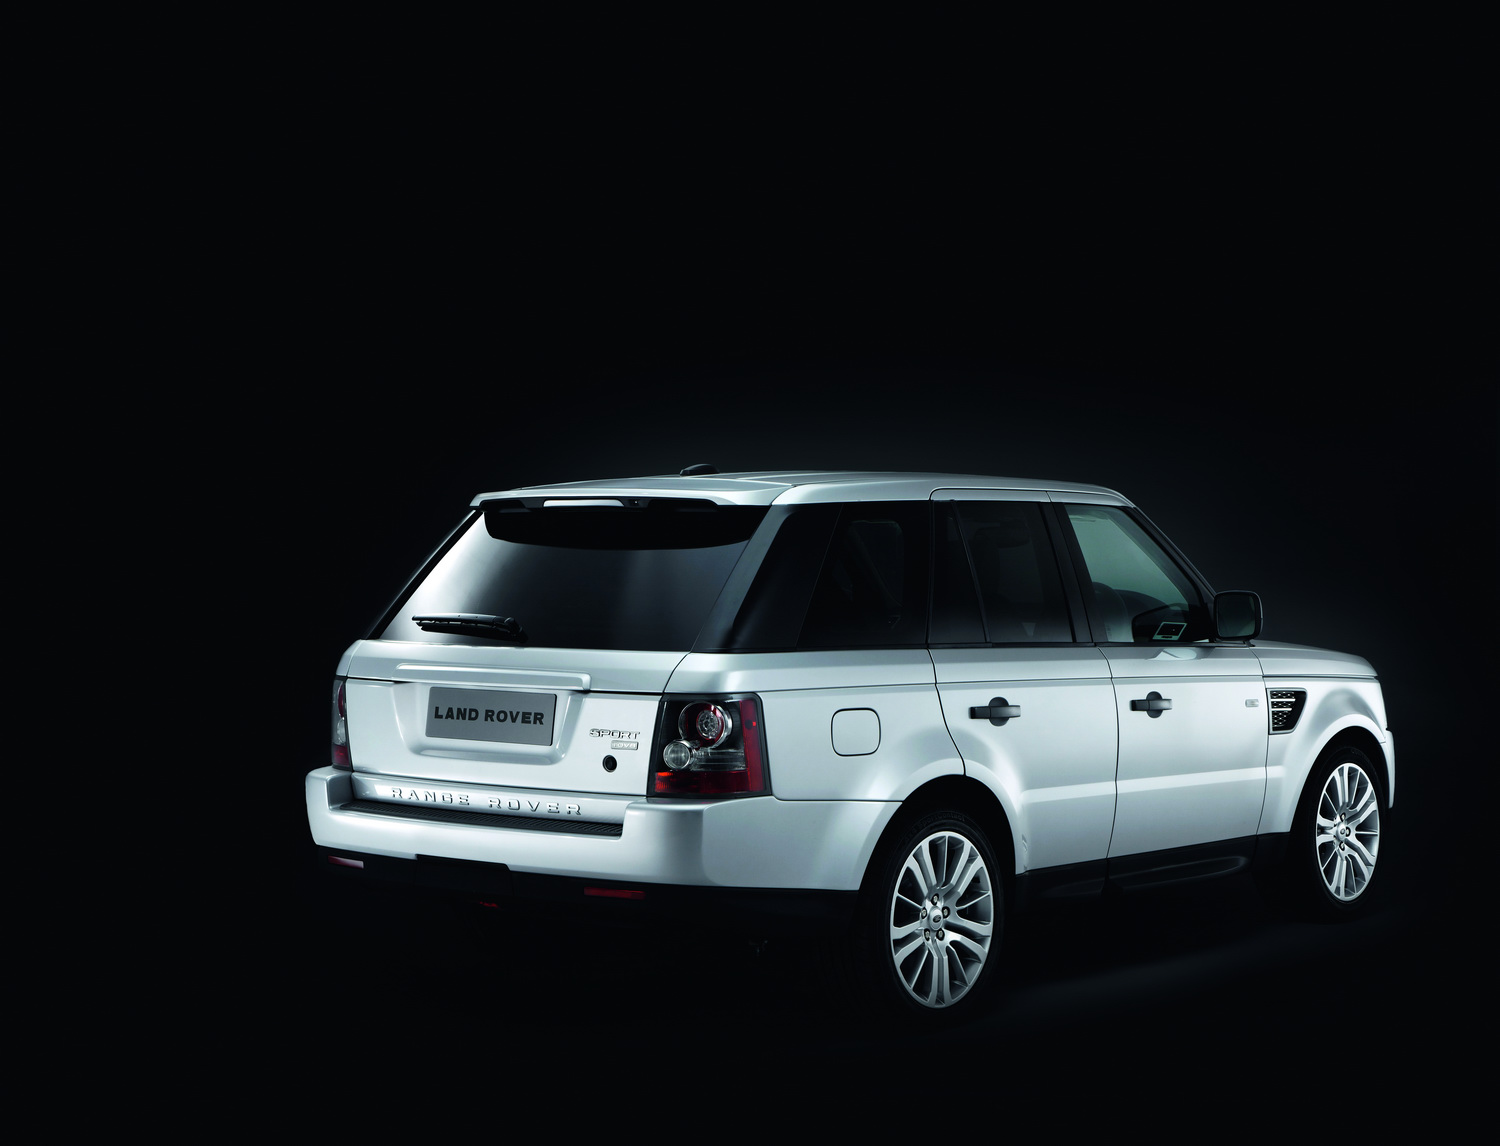 2010 Range Rover Sport 17 Facelifted Range Rover Sport gets new V6 Diesel and V8 Petrol units